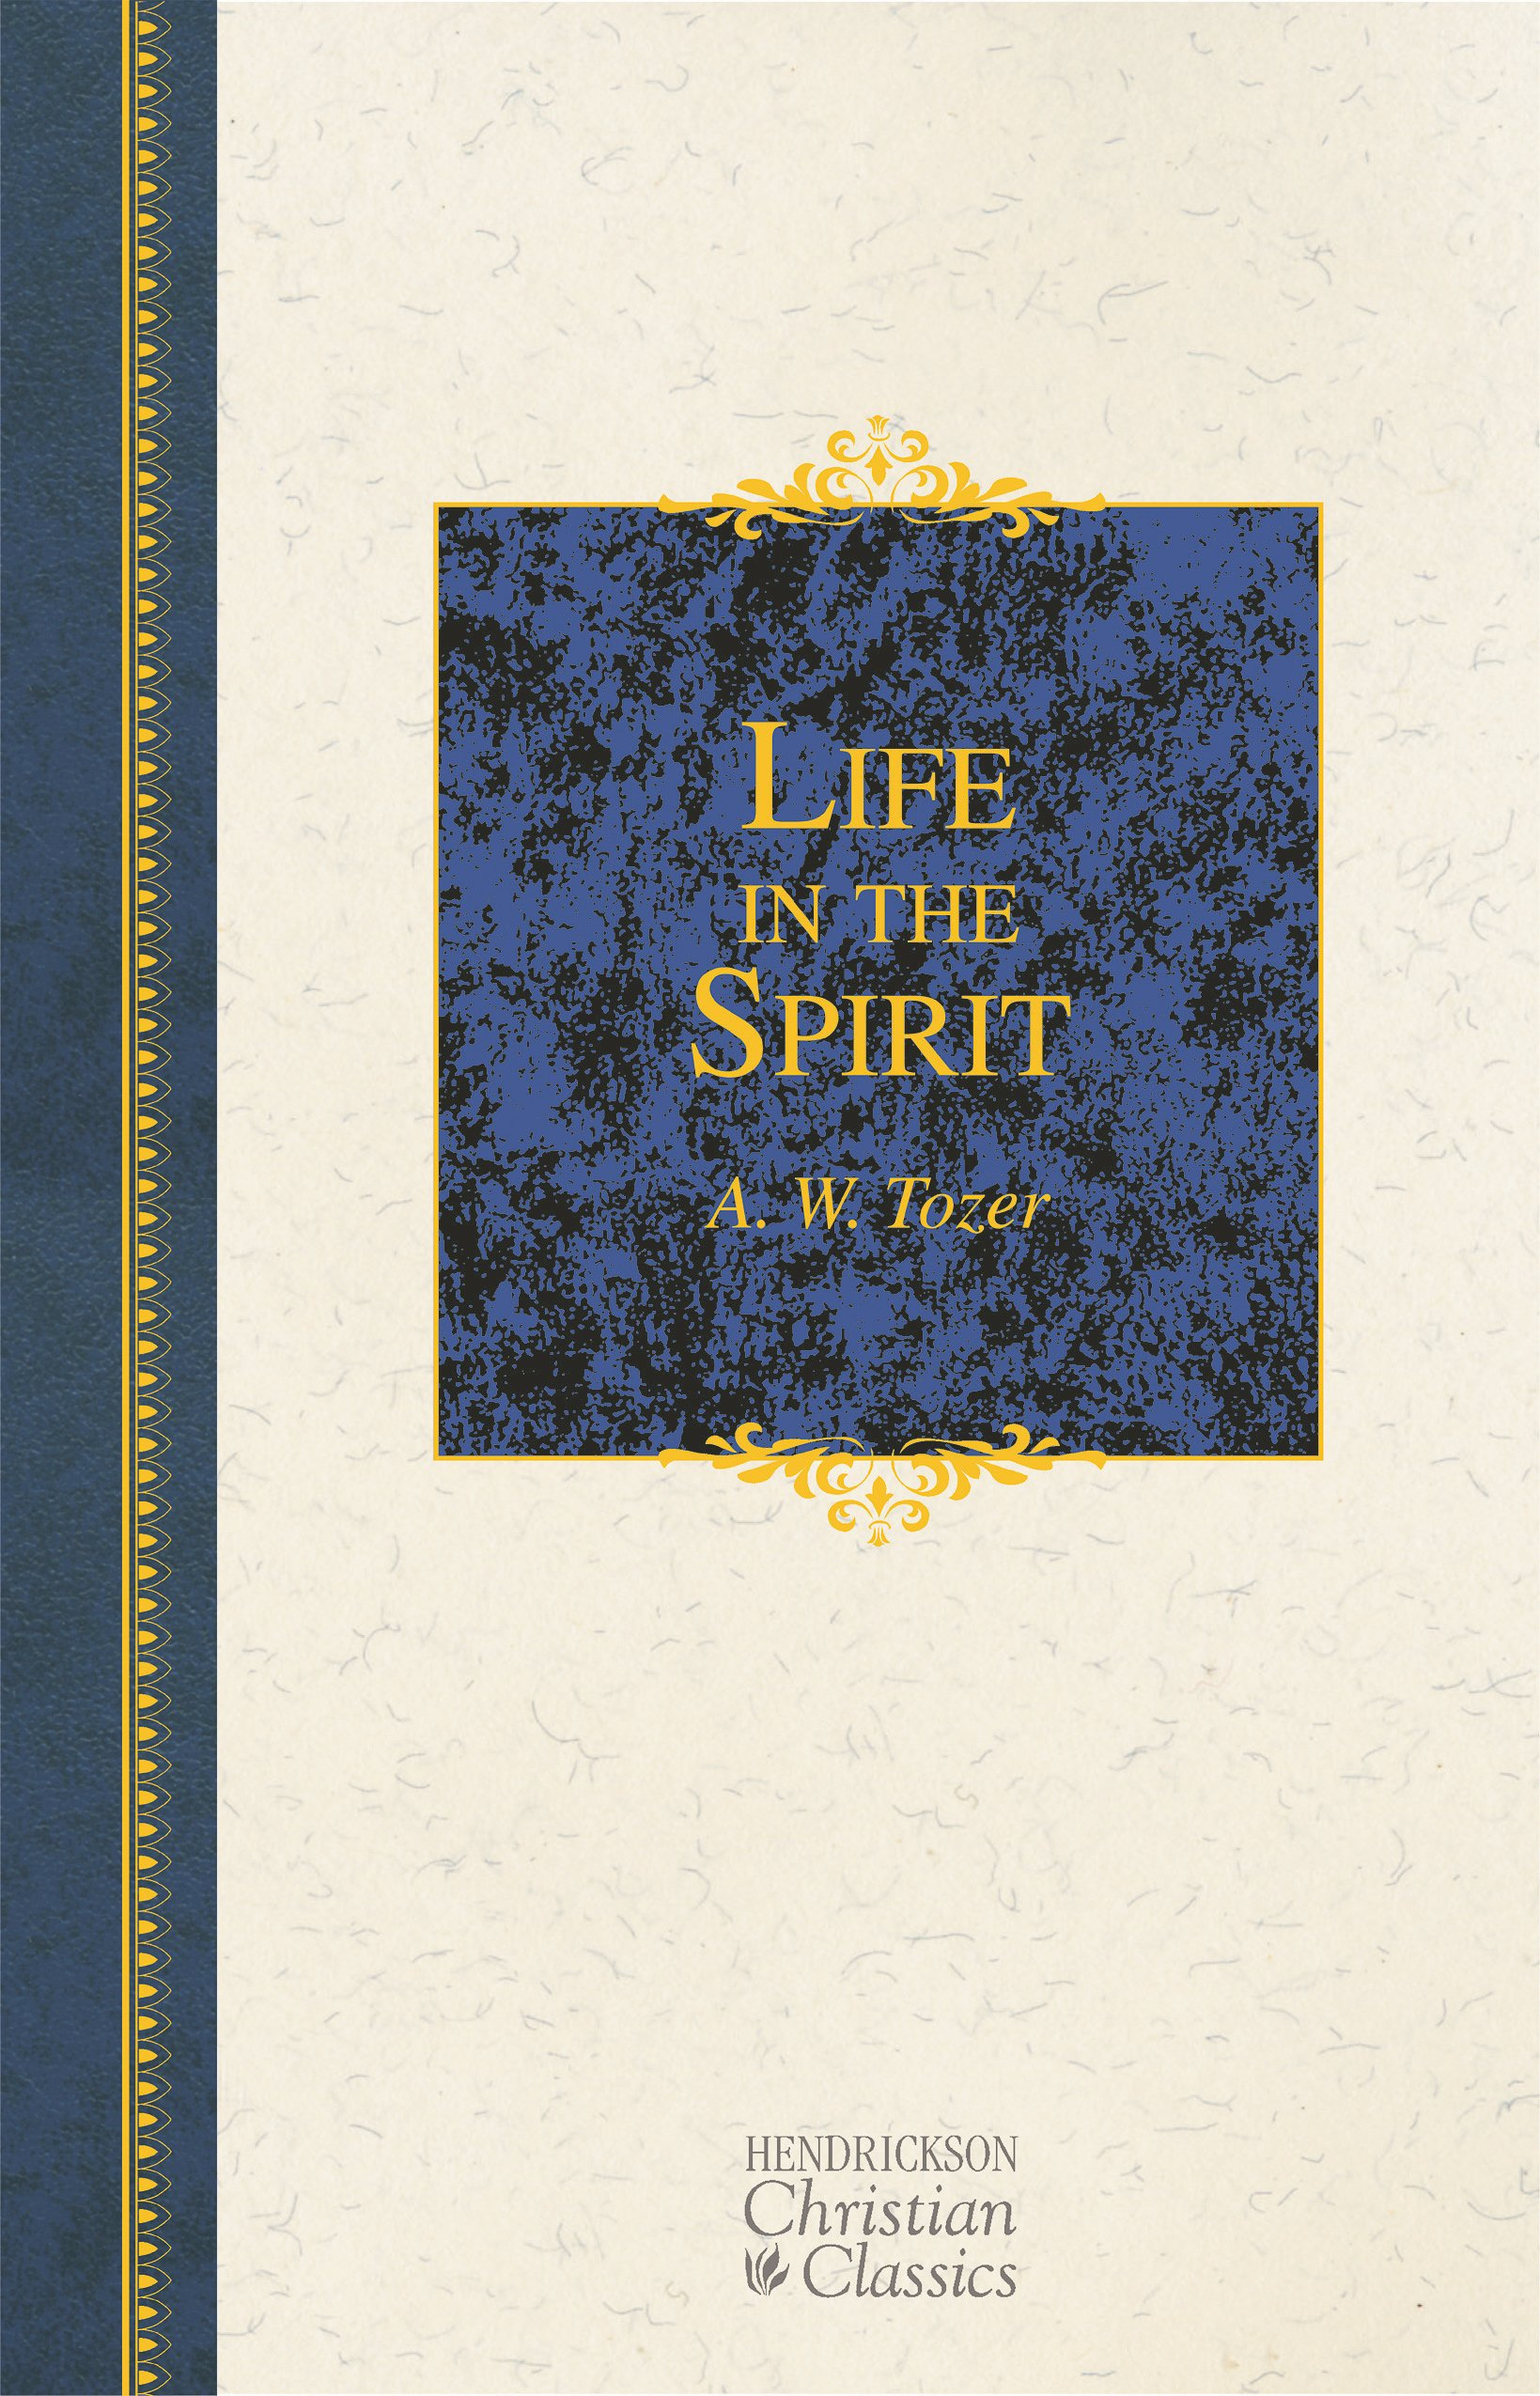 Life In The Spirit Including How To Be Filled With Holy And Counselor Hendrickson Christian Classics A W Tozer 9781598563344